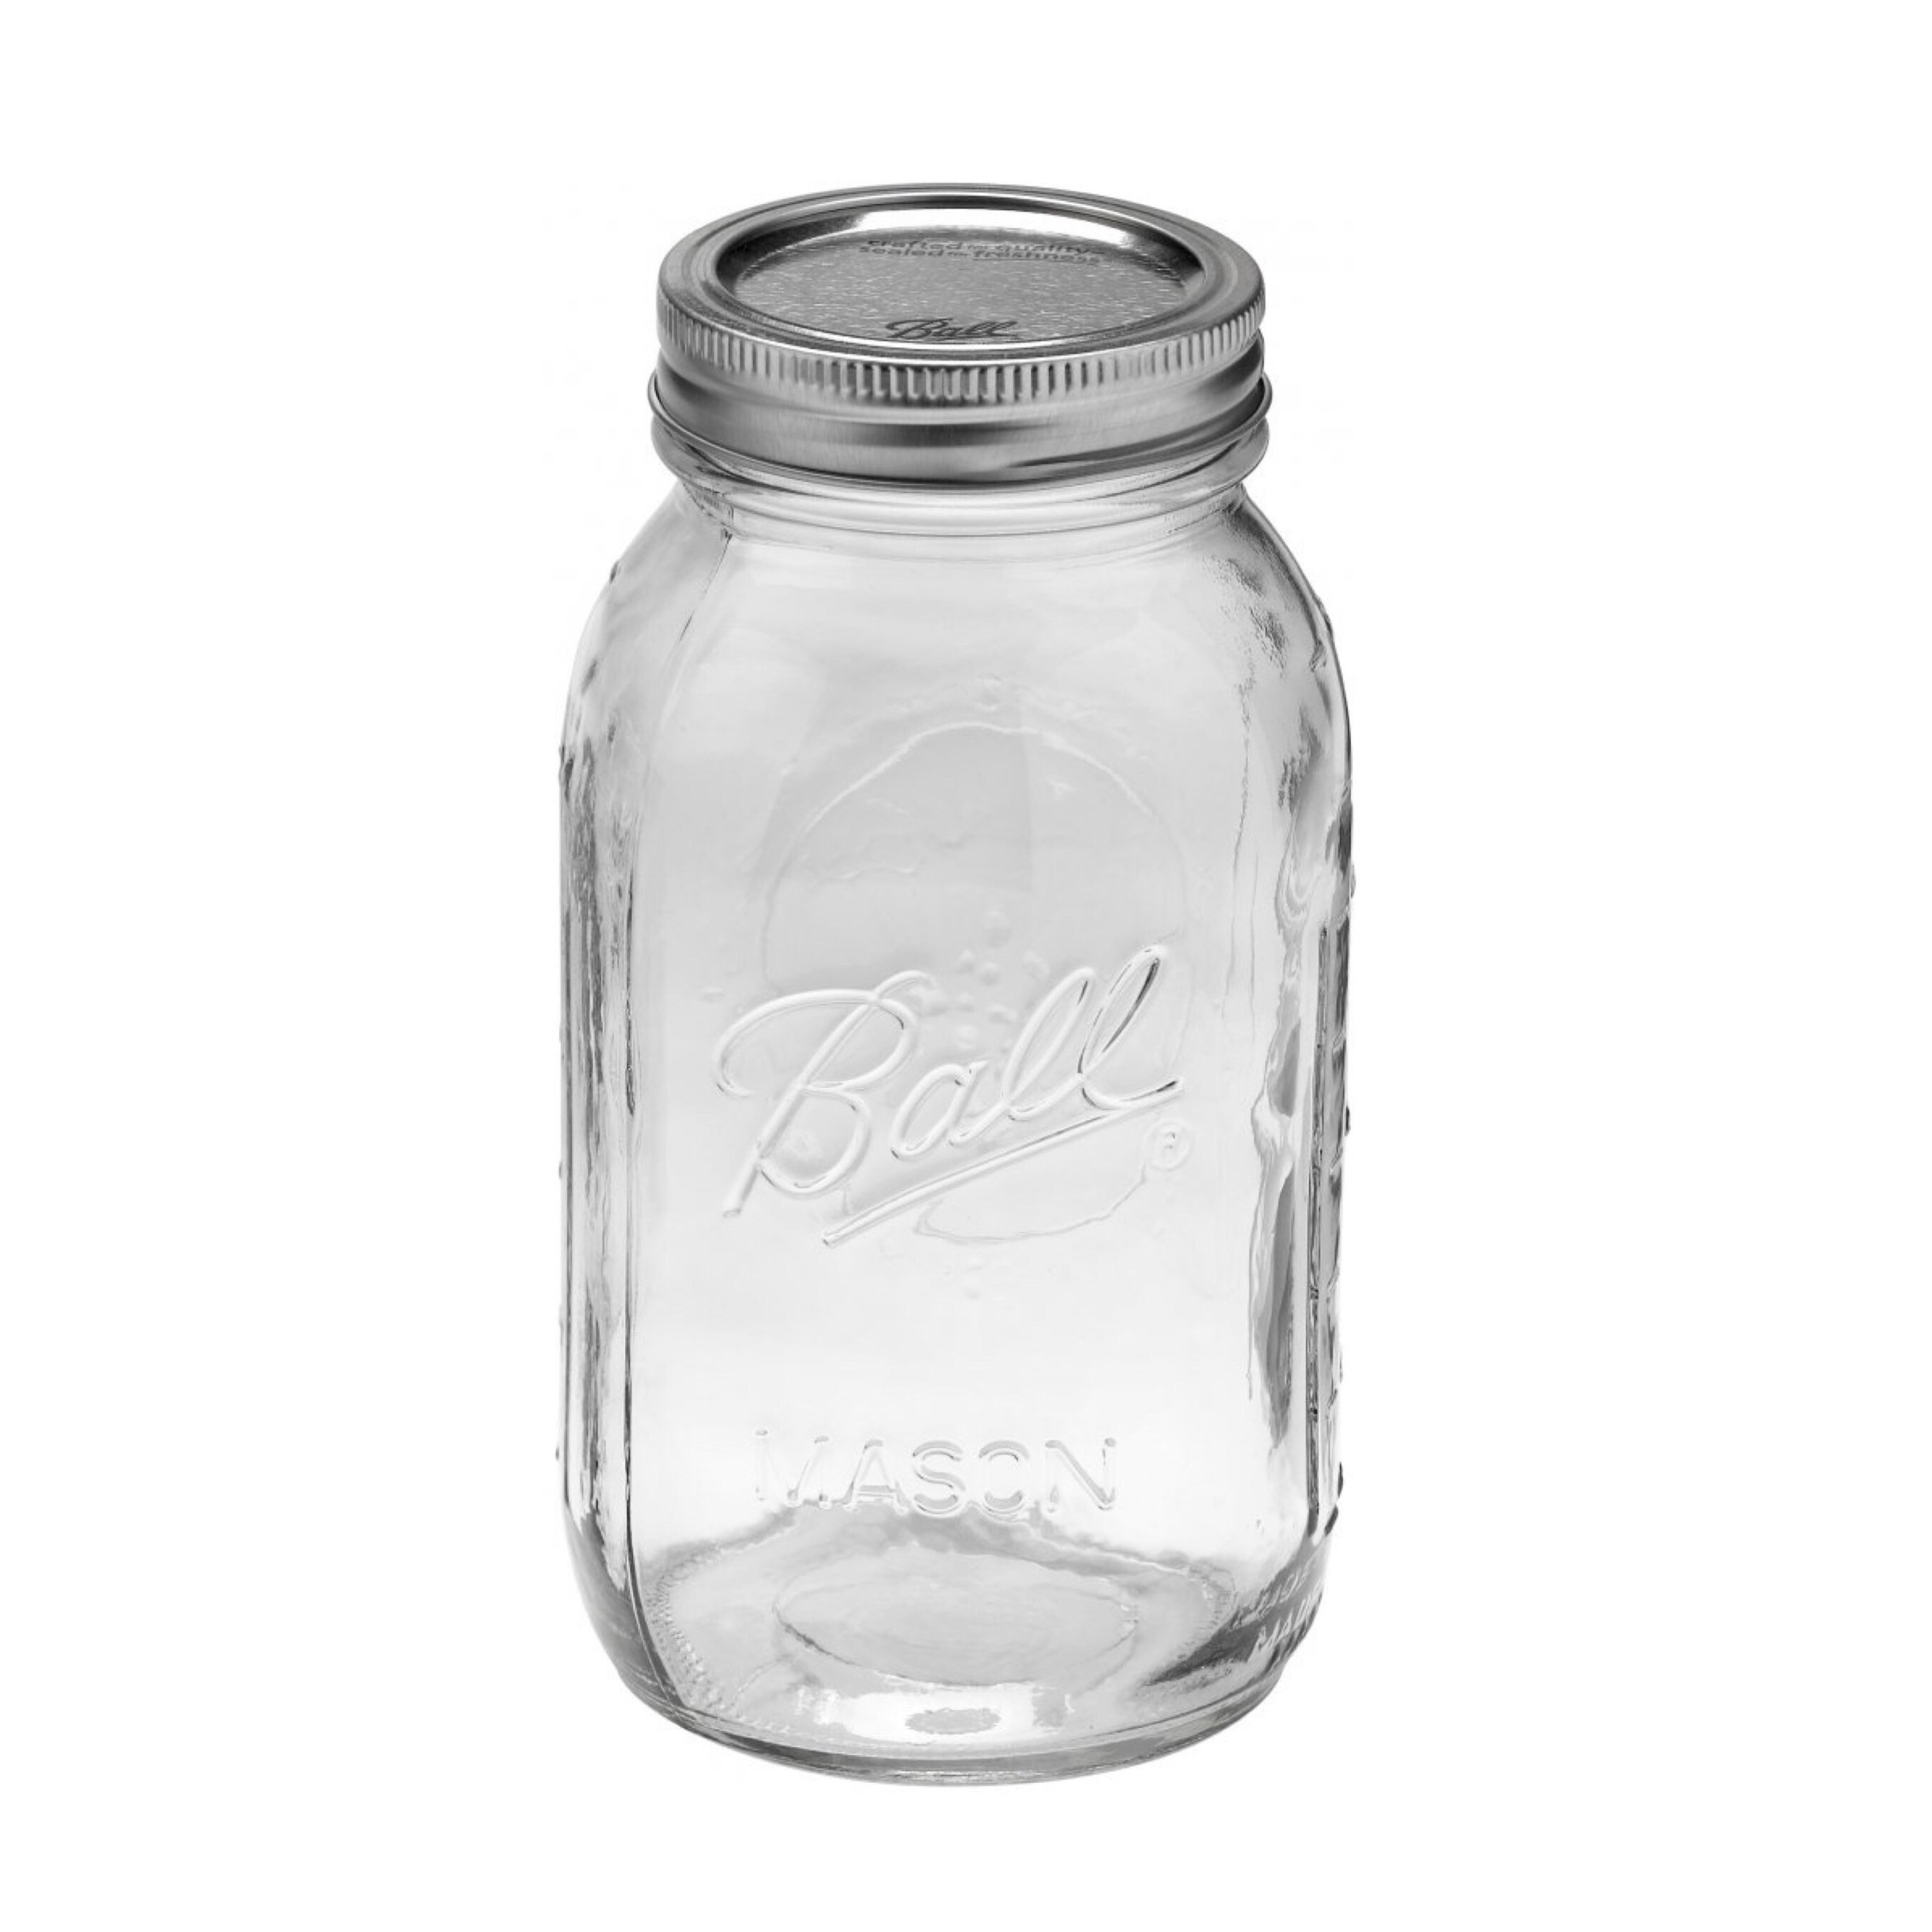 Ball Mason - 32 oz / 950mL Regular Mouth Jars (6 pack) - I currently own both the wide mouth and regular mouth jars. They're both very similar, but it just comes down to preference depending on what you use them for. I find the wide mouth jars better for storing pantry goods (since it's easier to pour ingredients in/out of it) whereas regular mouth ones seem to be better for serving and consuming beverages.